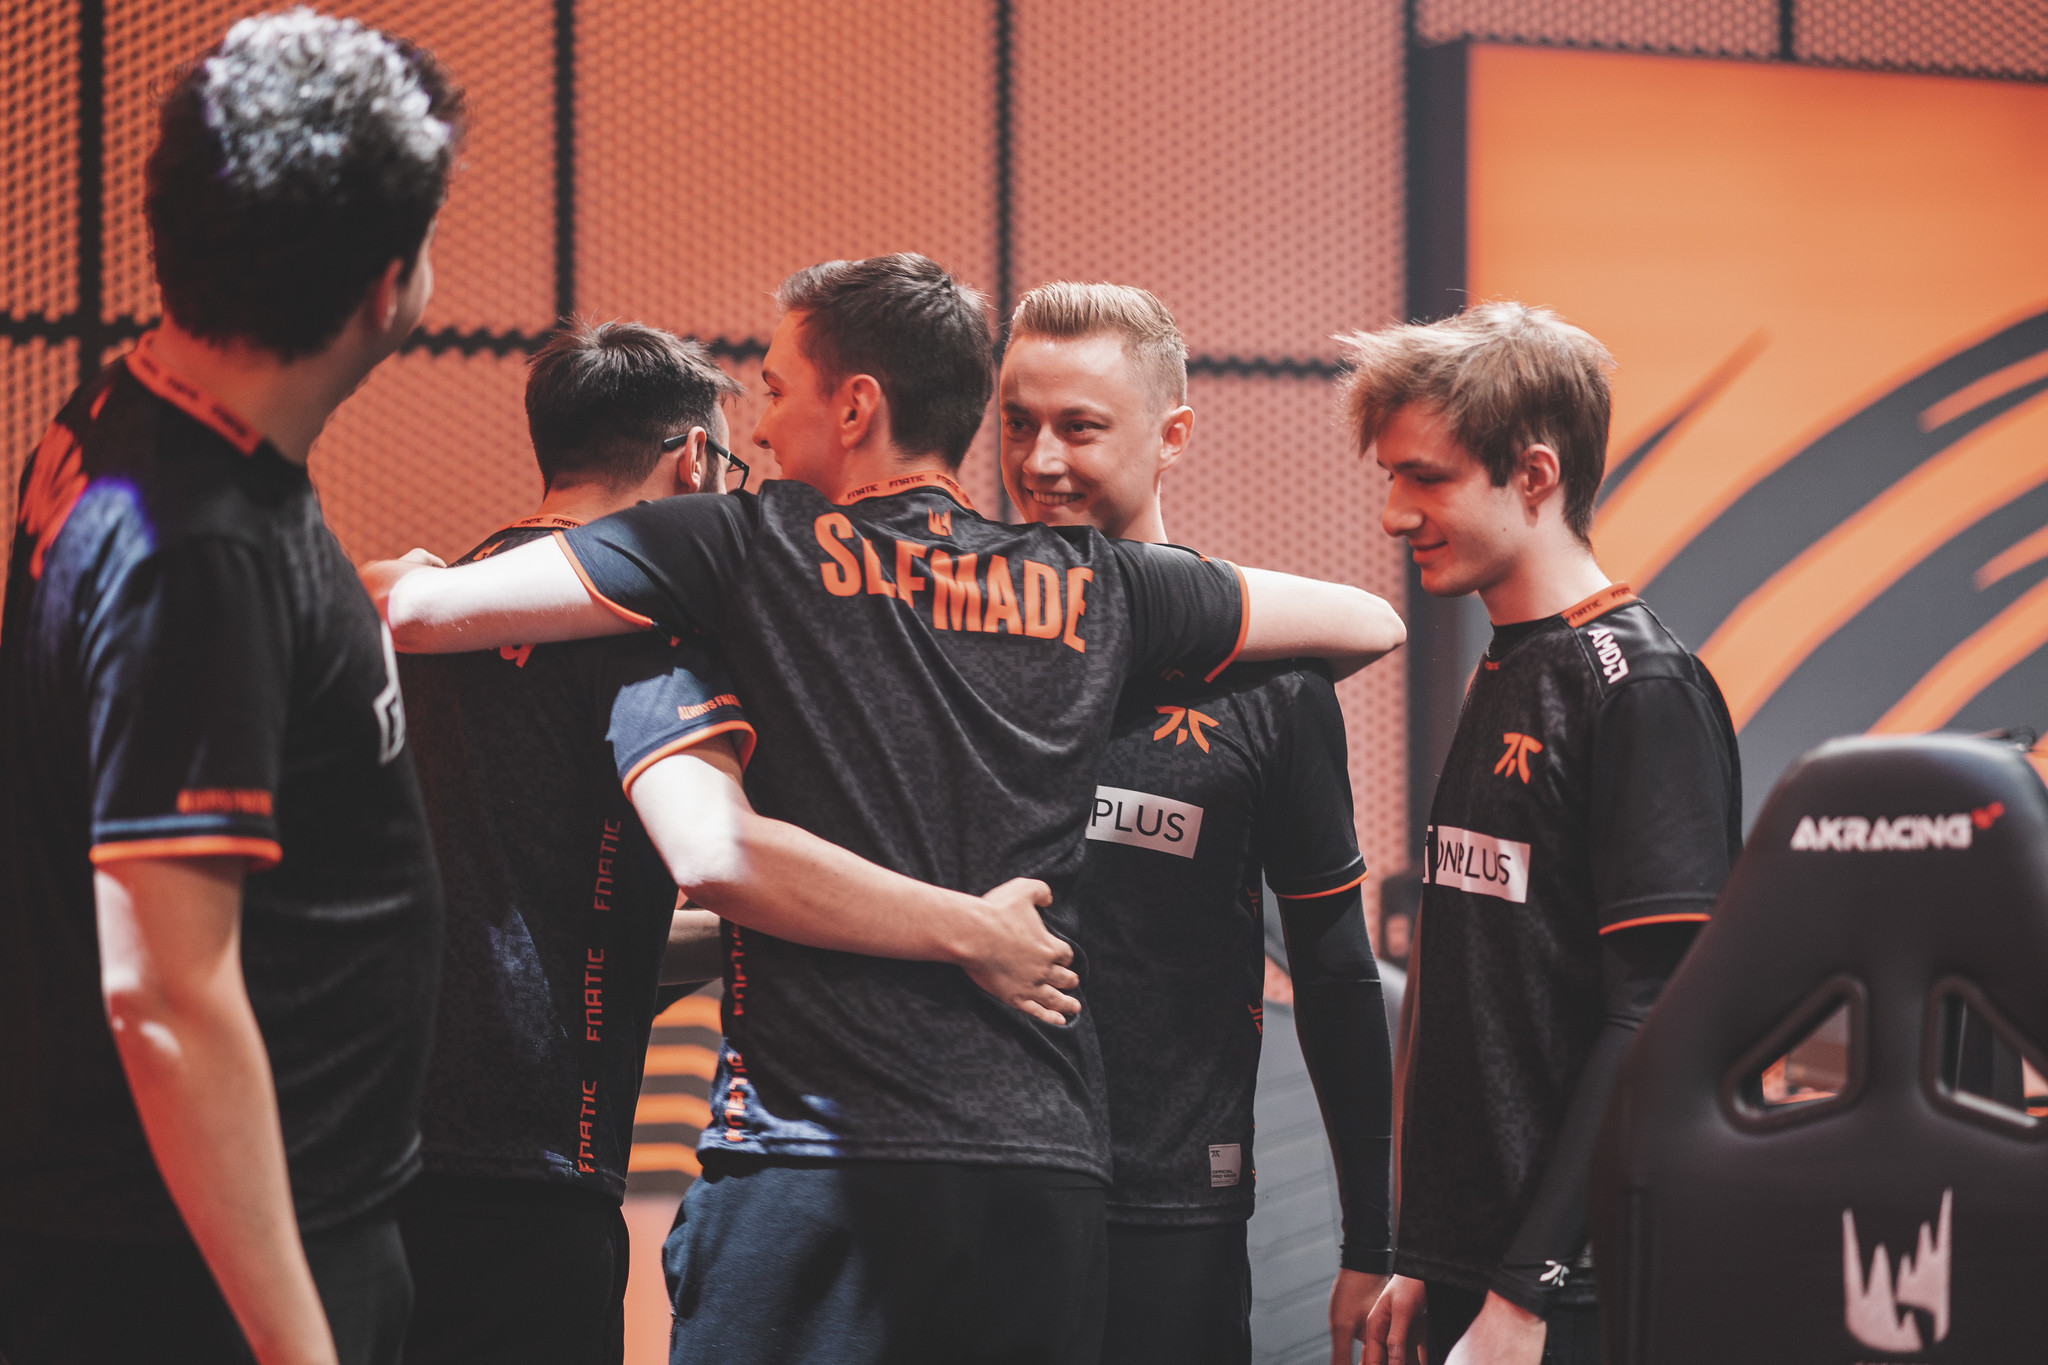 Fnatic tie for second place in LEC with win over MAD Lions